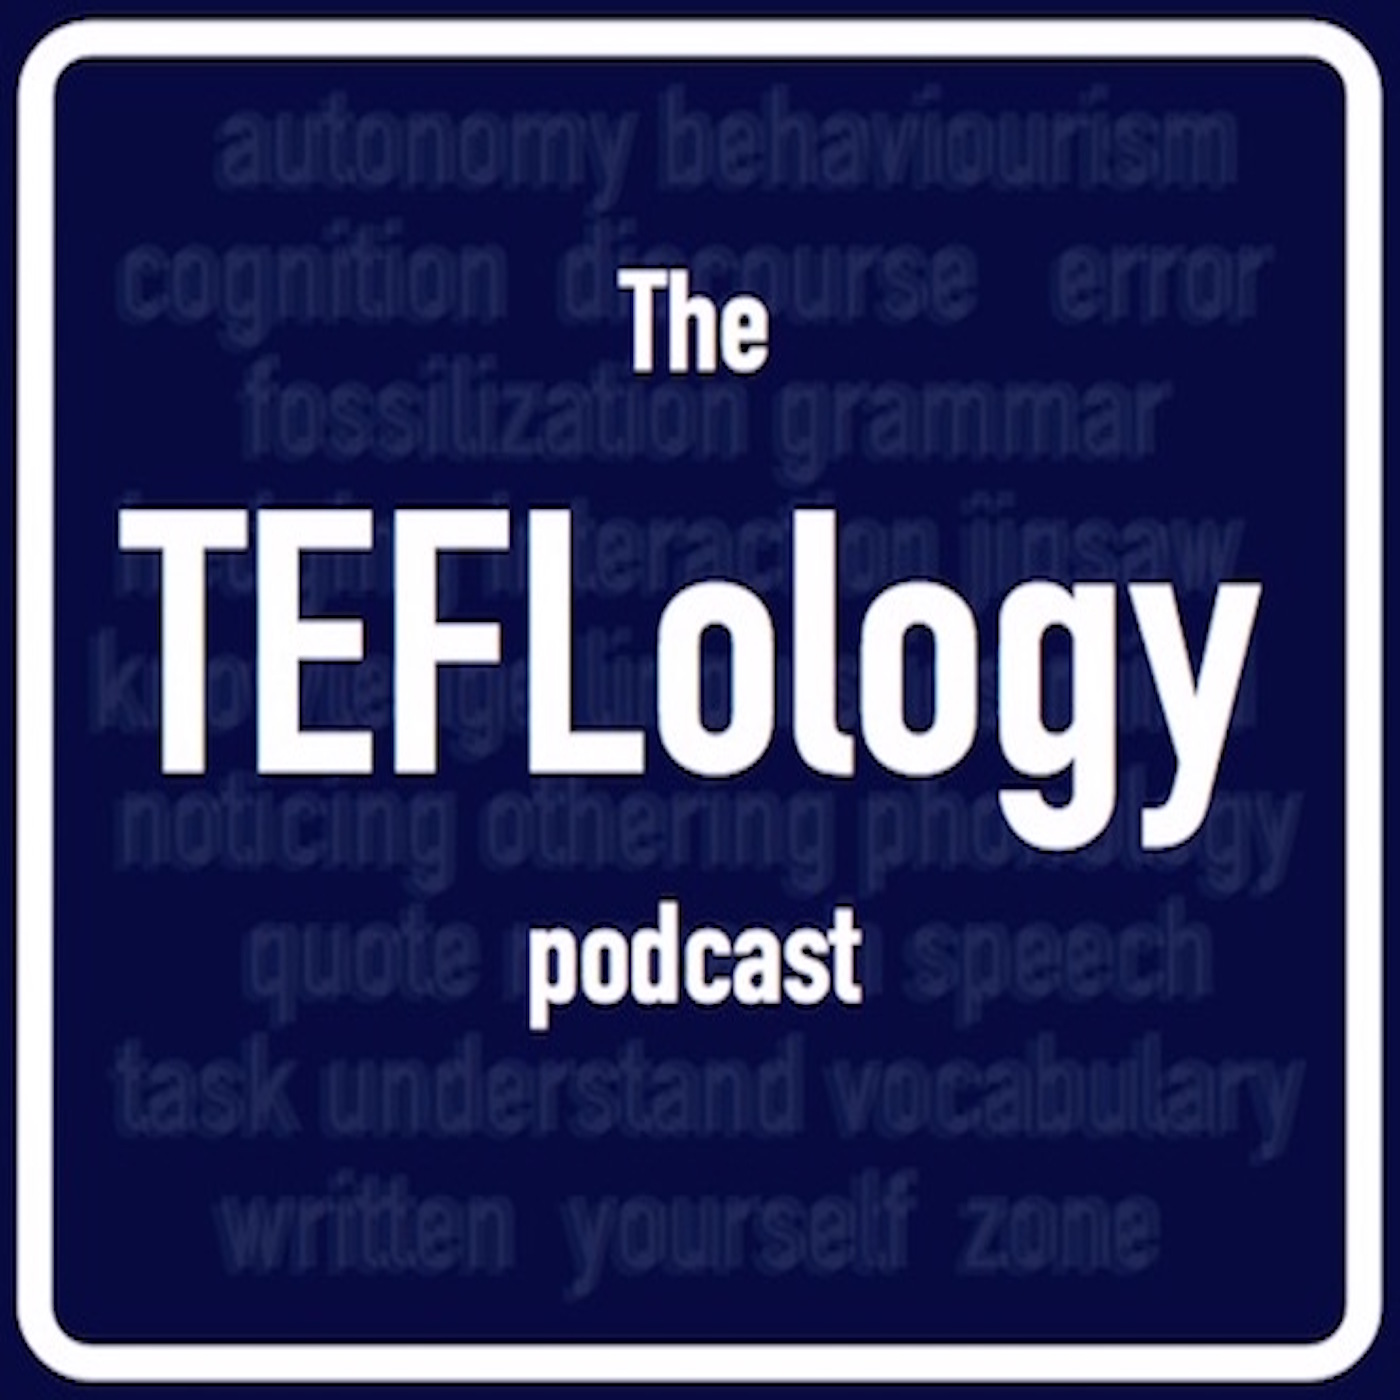 Episode 47: Alan Waters, Oral Proficiency Exams, and Theresa May